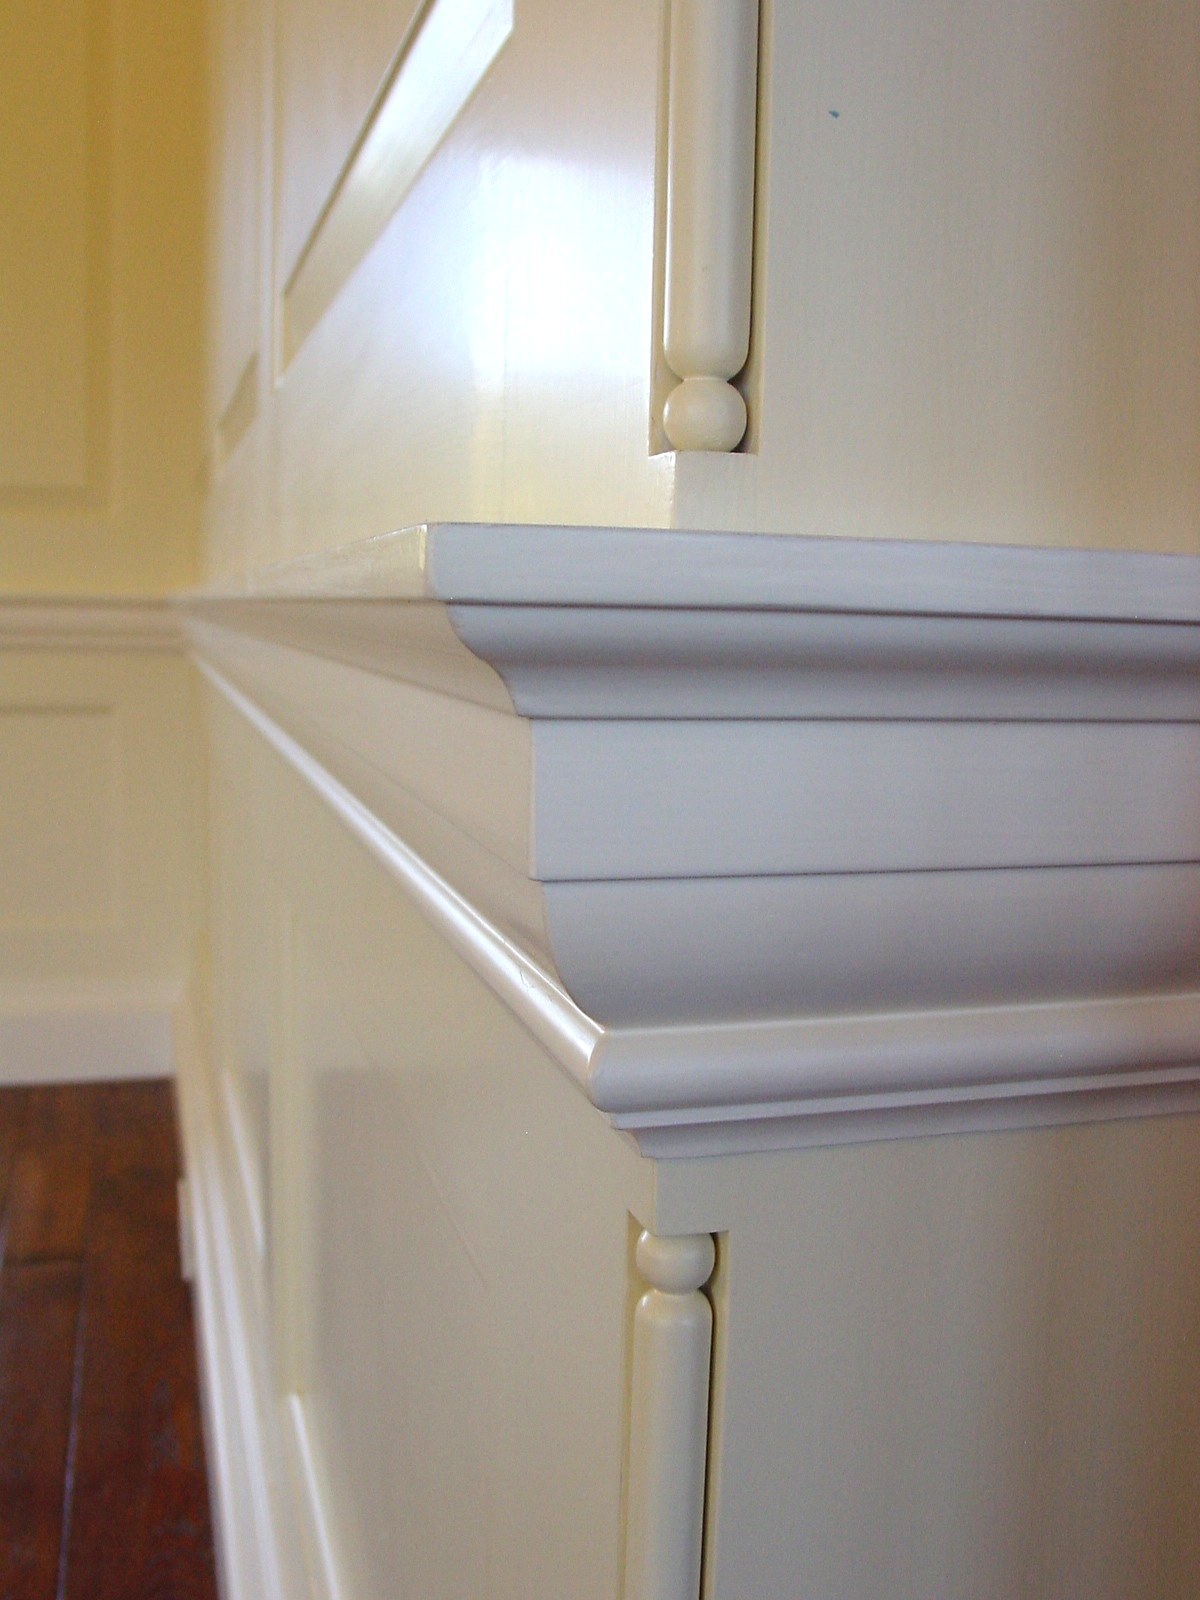 All of the wood  work was custom milled to match the original drawings by Lutyens.